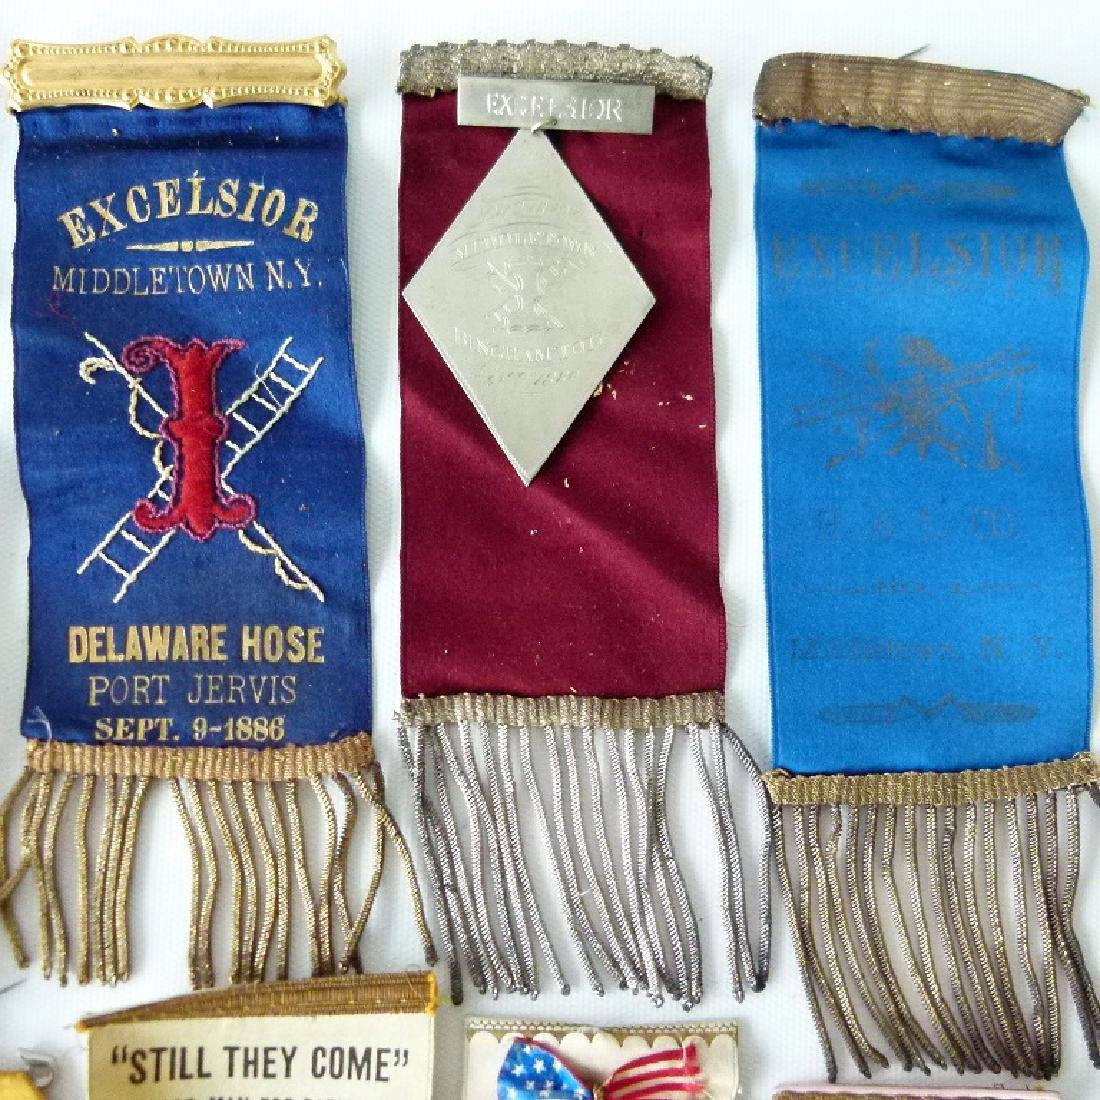 LOT ASSORTED INCL. EXCELSIOR FIRE DEPARTMENT EXHIBITION - 3